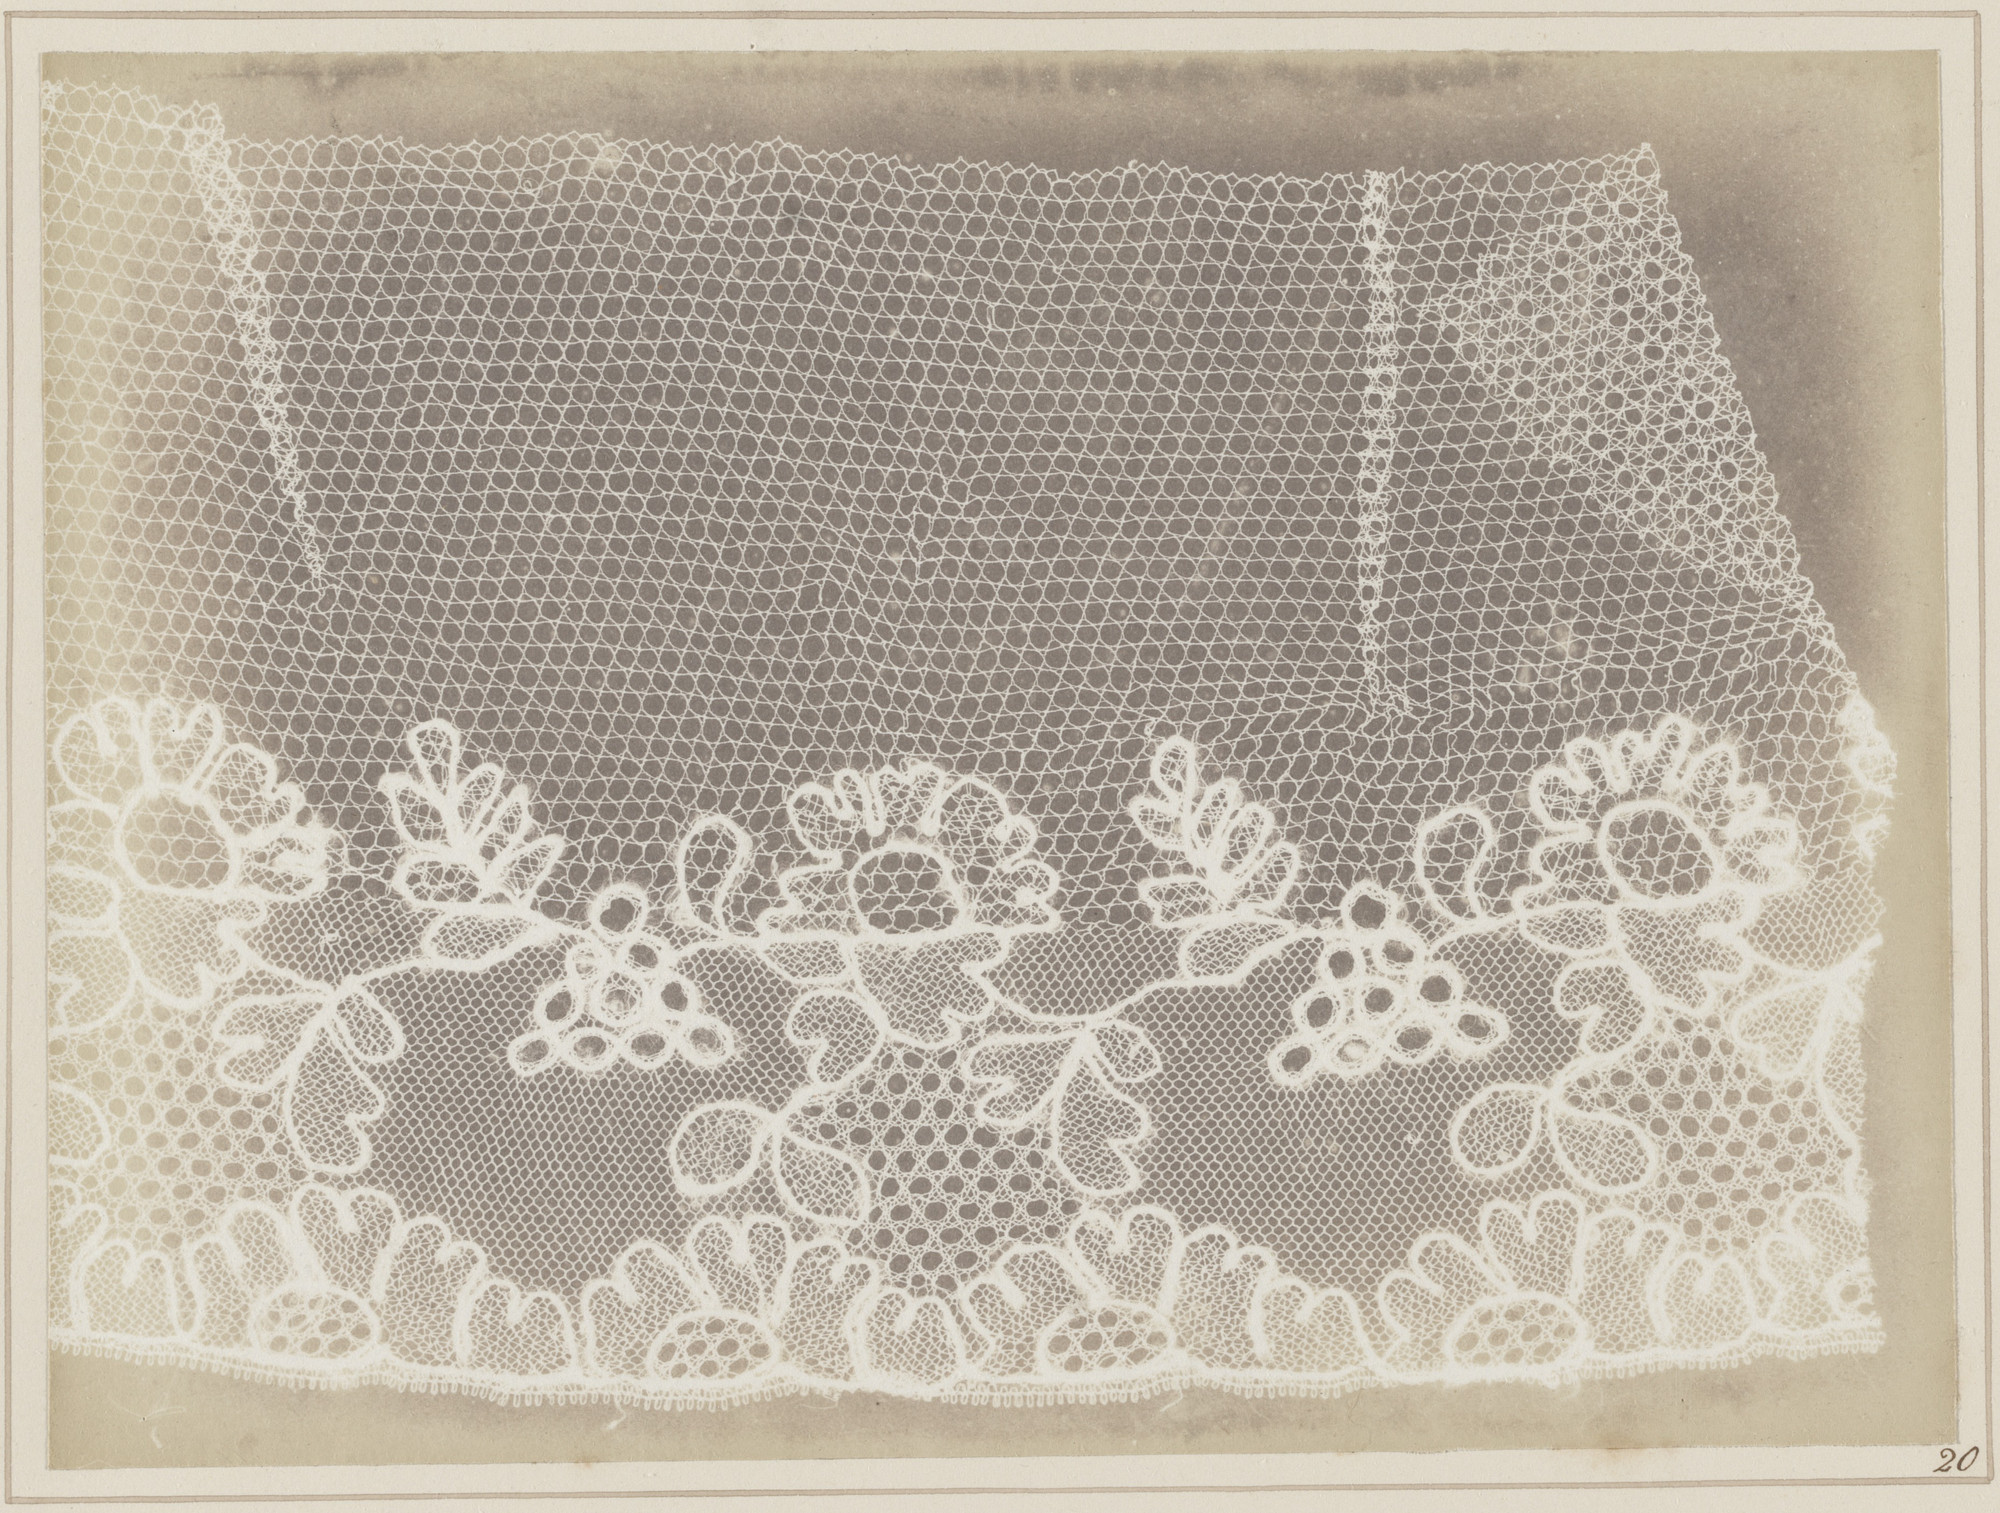 William Henry Fox Talbot. Lace. 1845